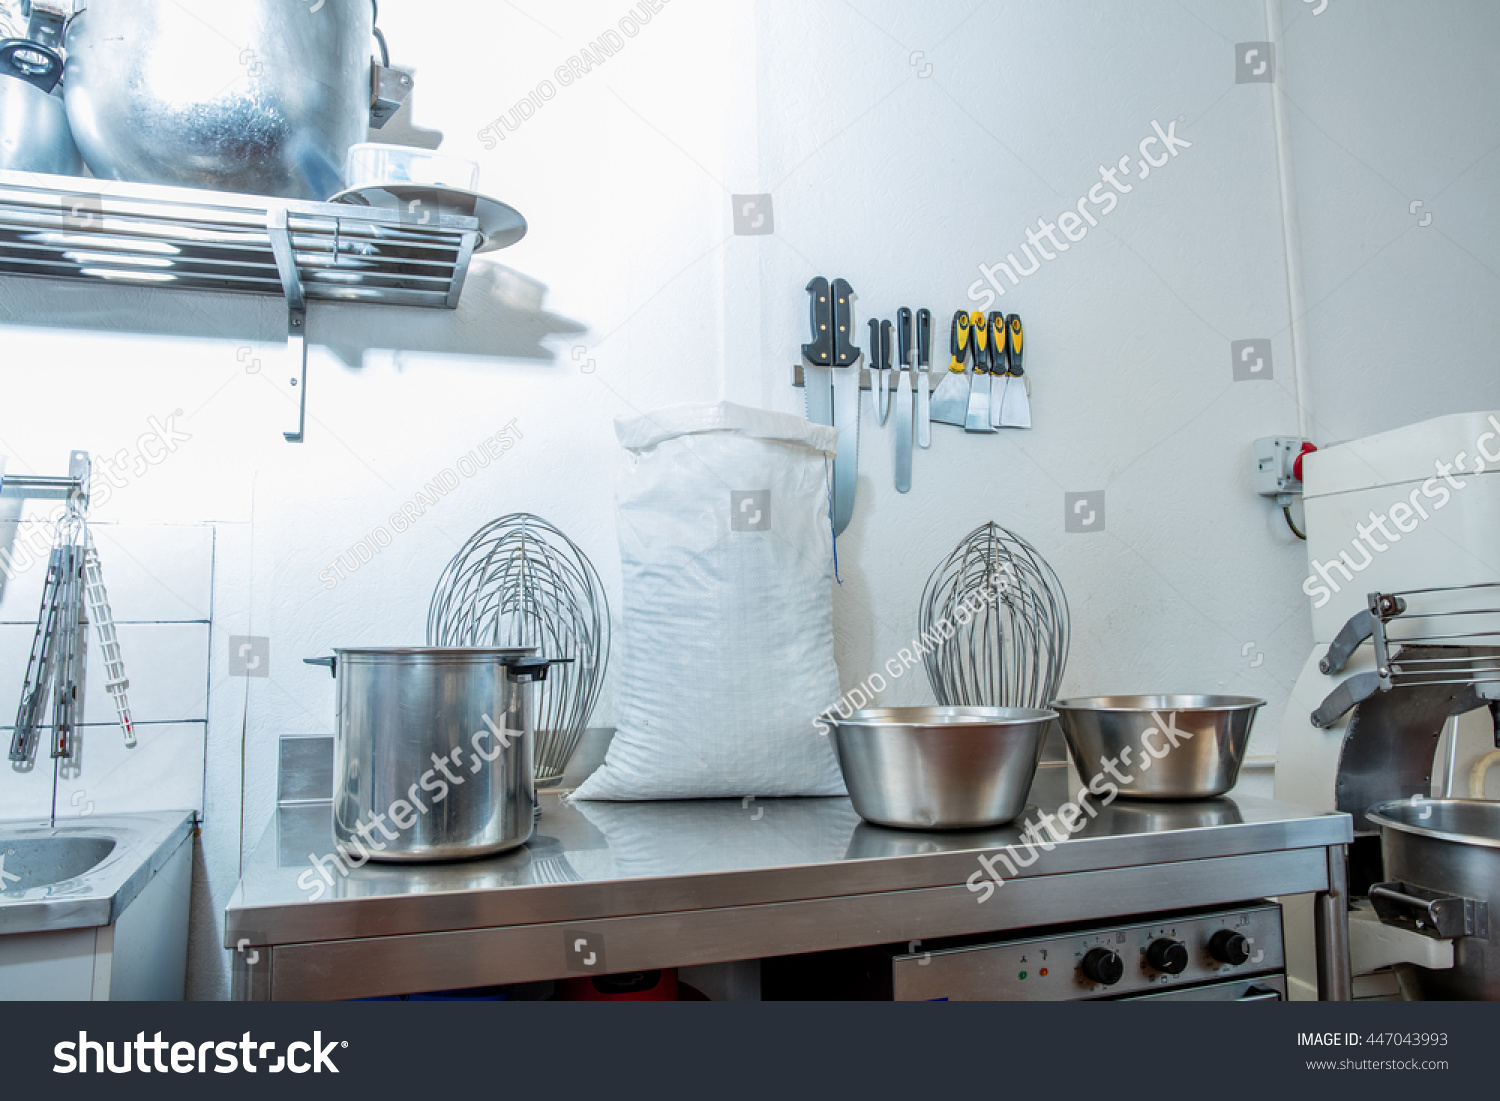 Industrial Commercial Utensils Accessories Big Whisks Stock Photo ...